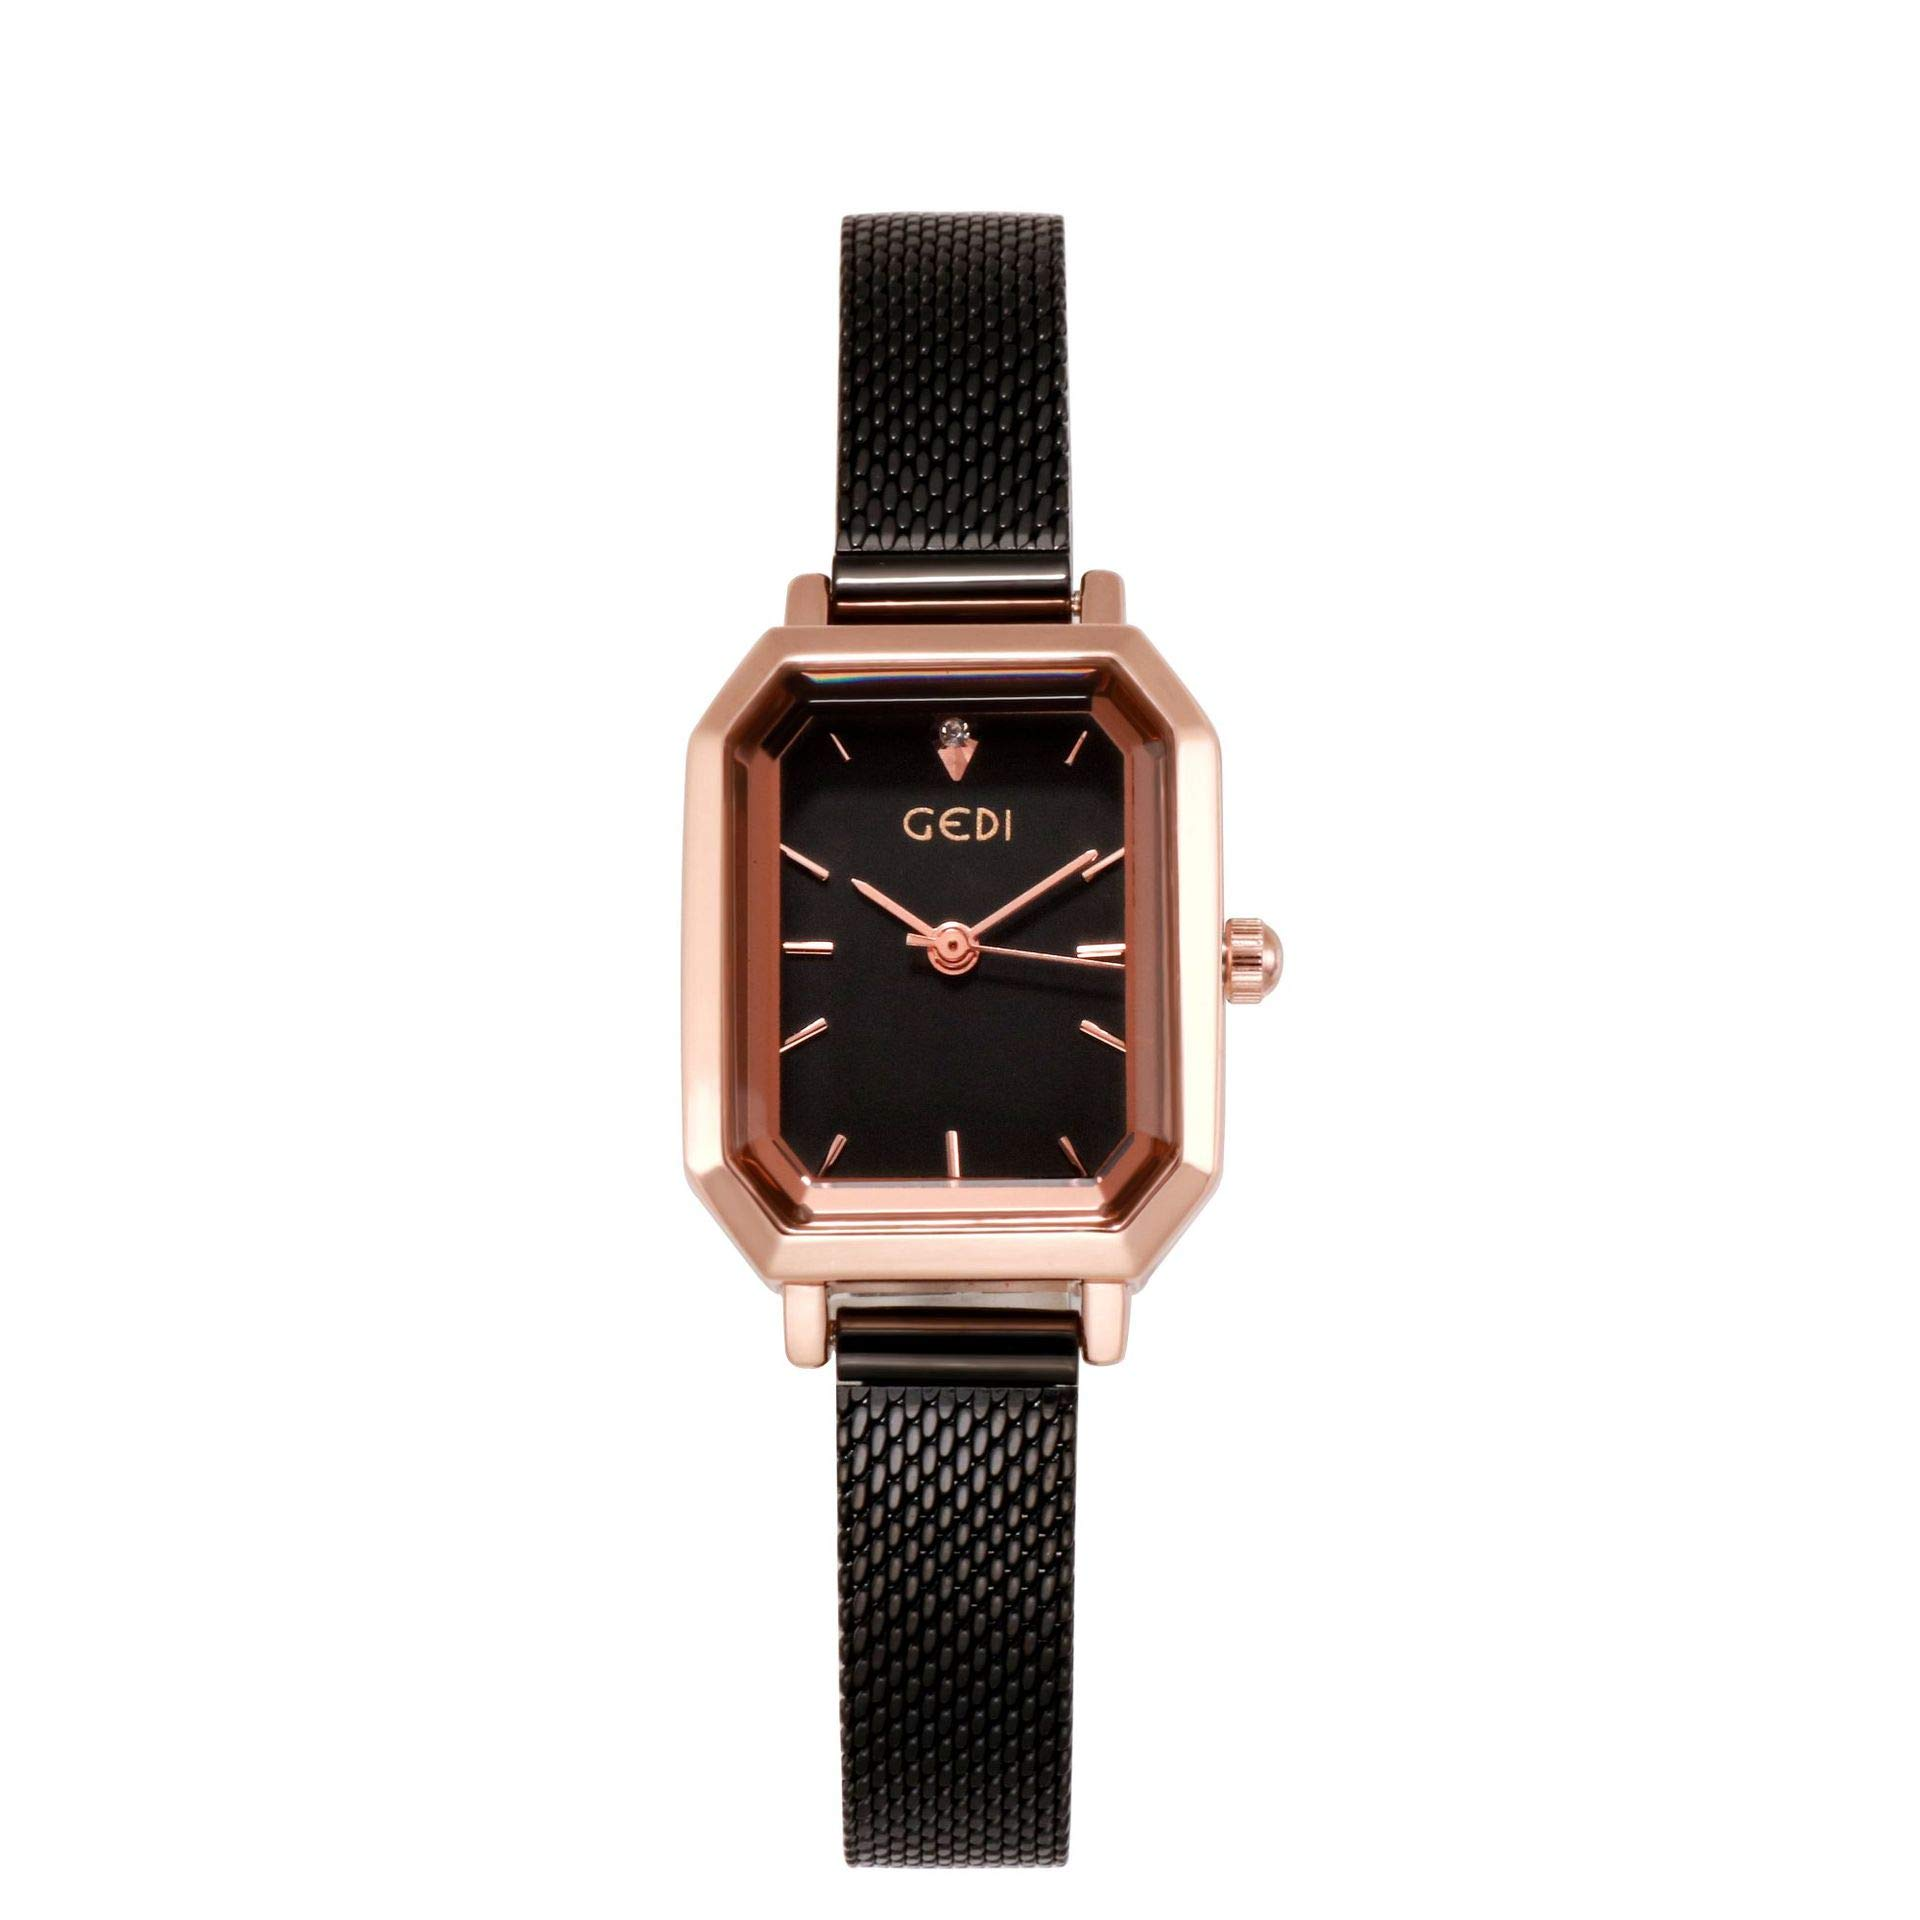 RONSHIN Gifts for Girls,Women's Bling Starry Dial Analog Waterproof Quartz Wrist Watches for Student Casual Office Rose Gold Shell White Plate by RONSHIN